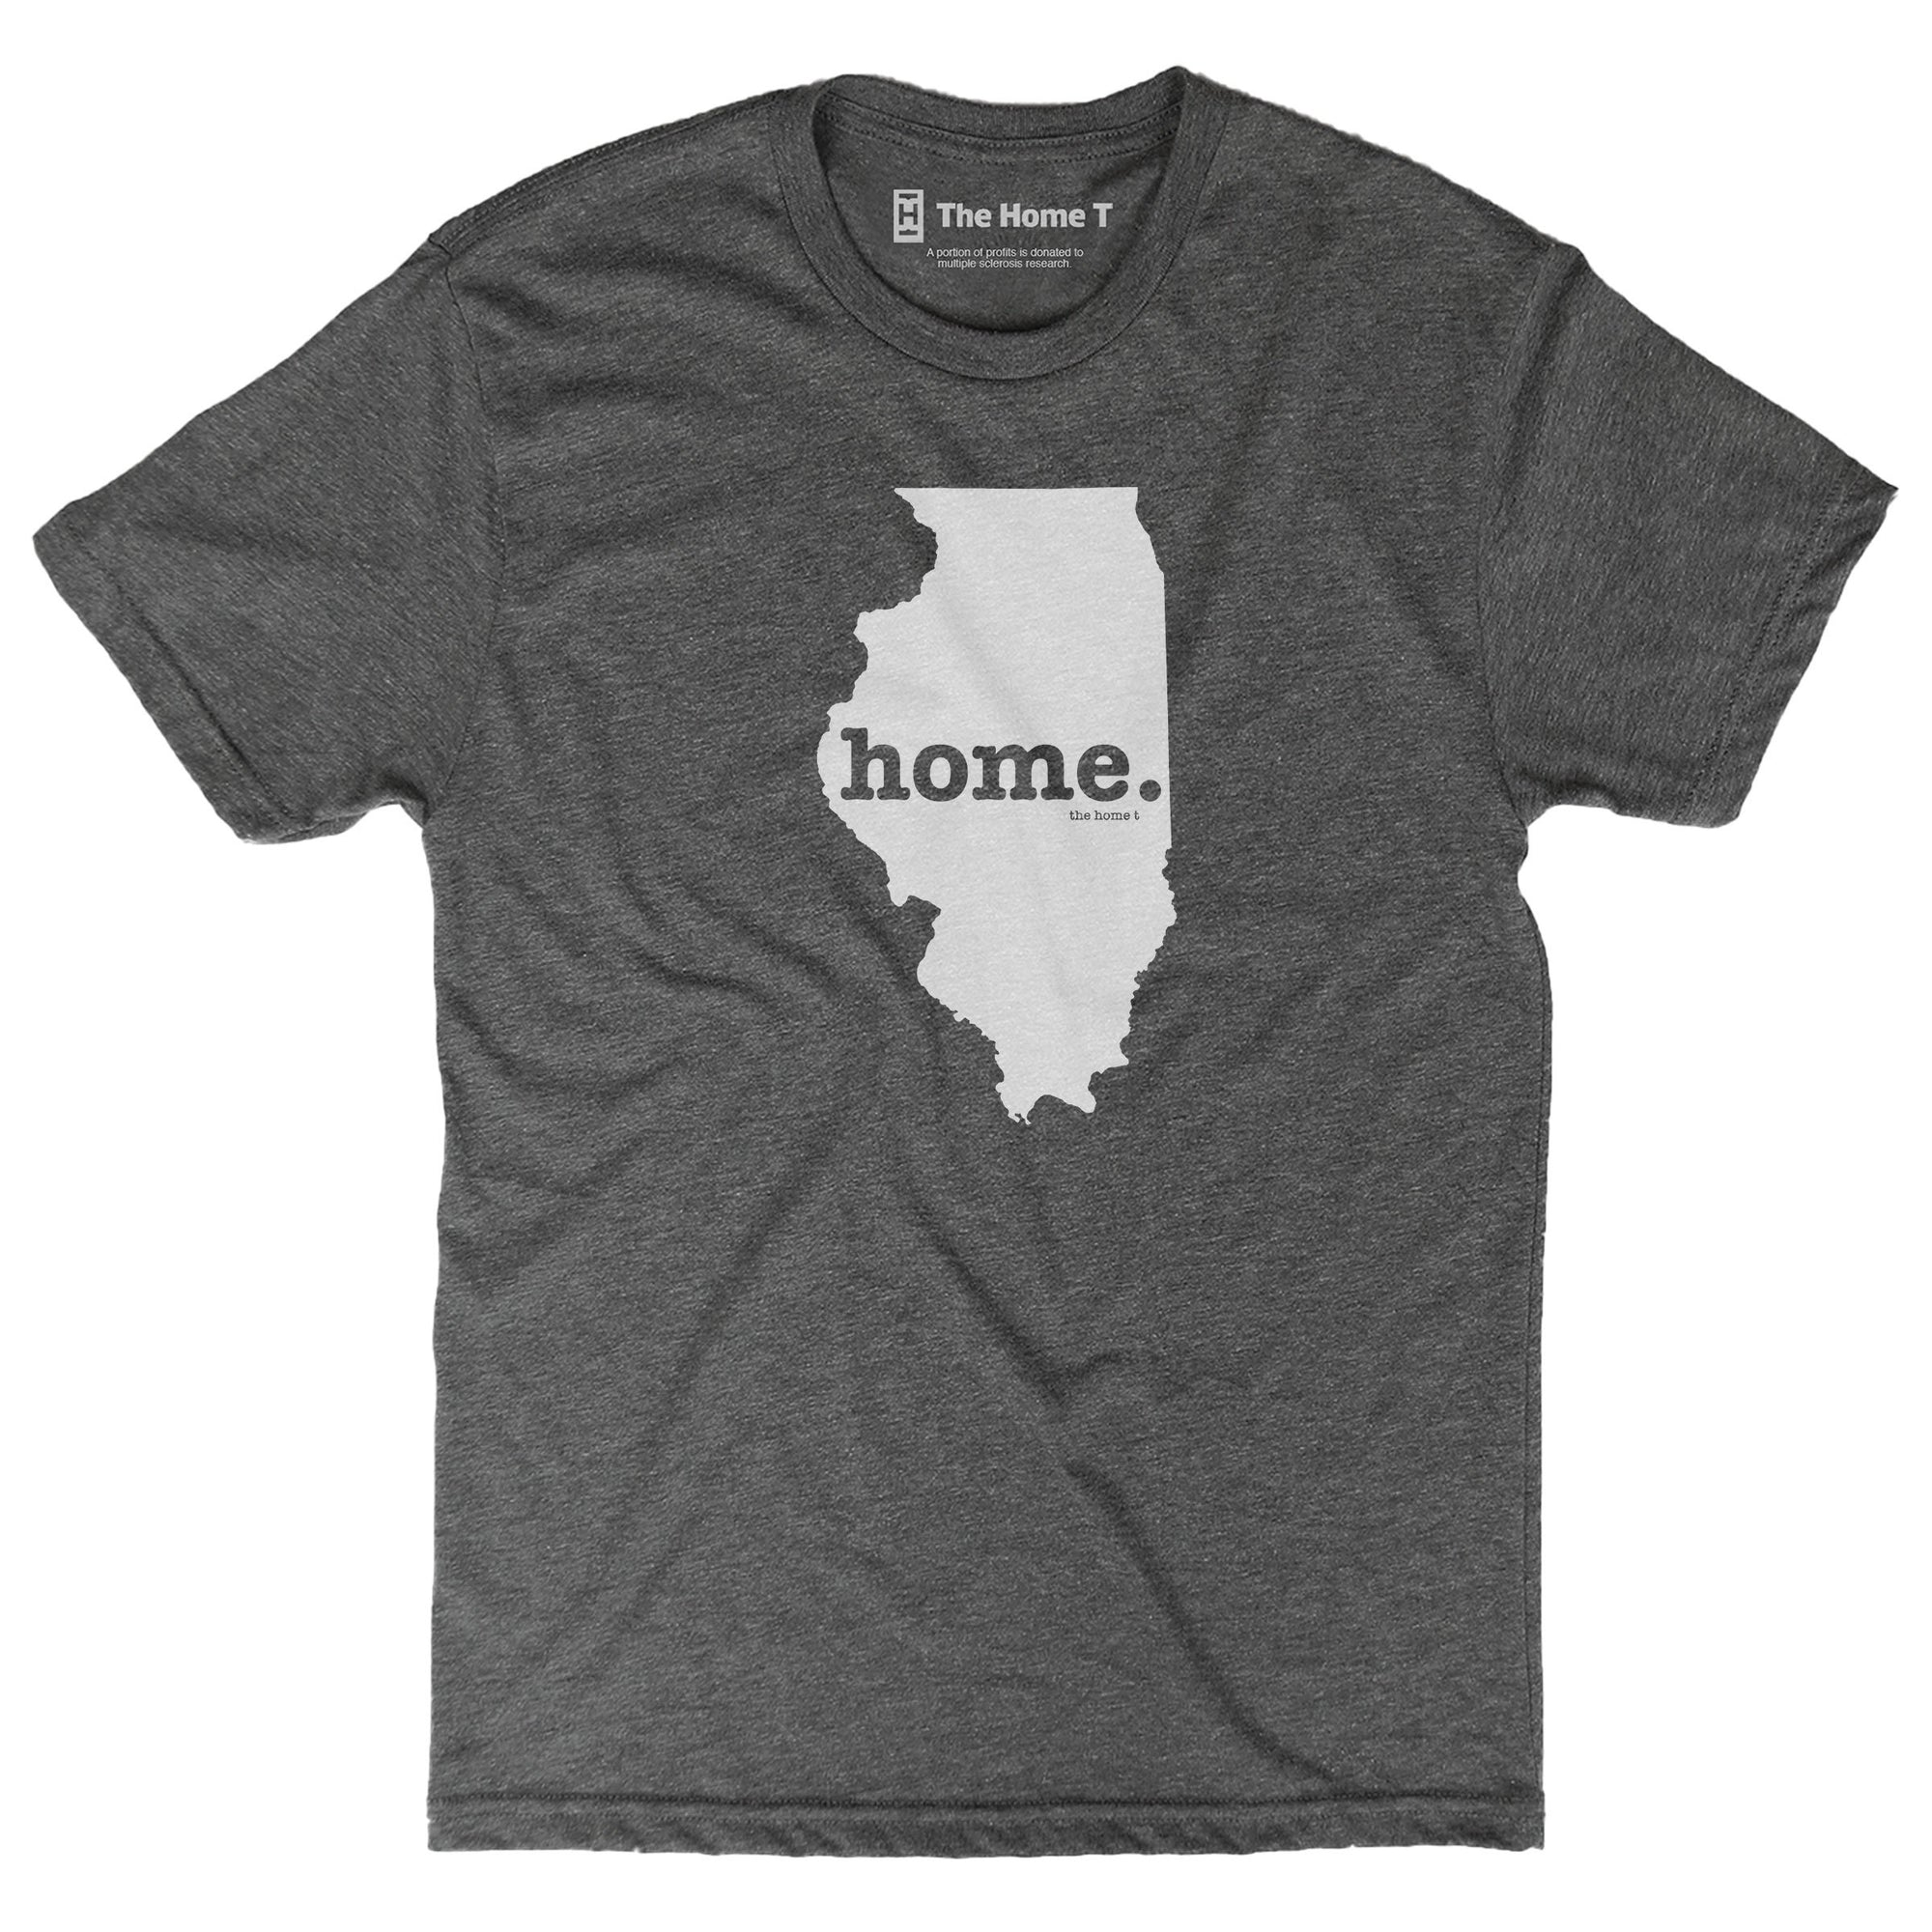 Illinois Home T Original Crew The Home T XXL Grey